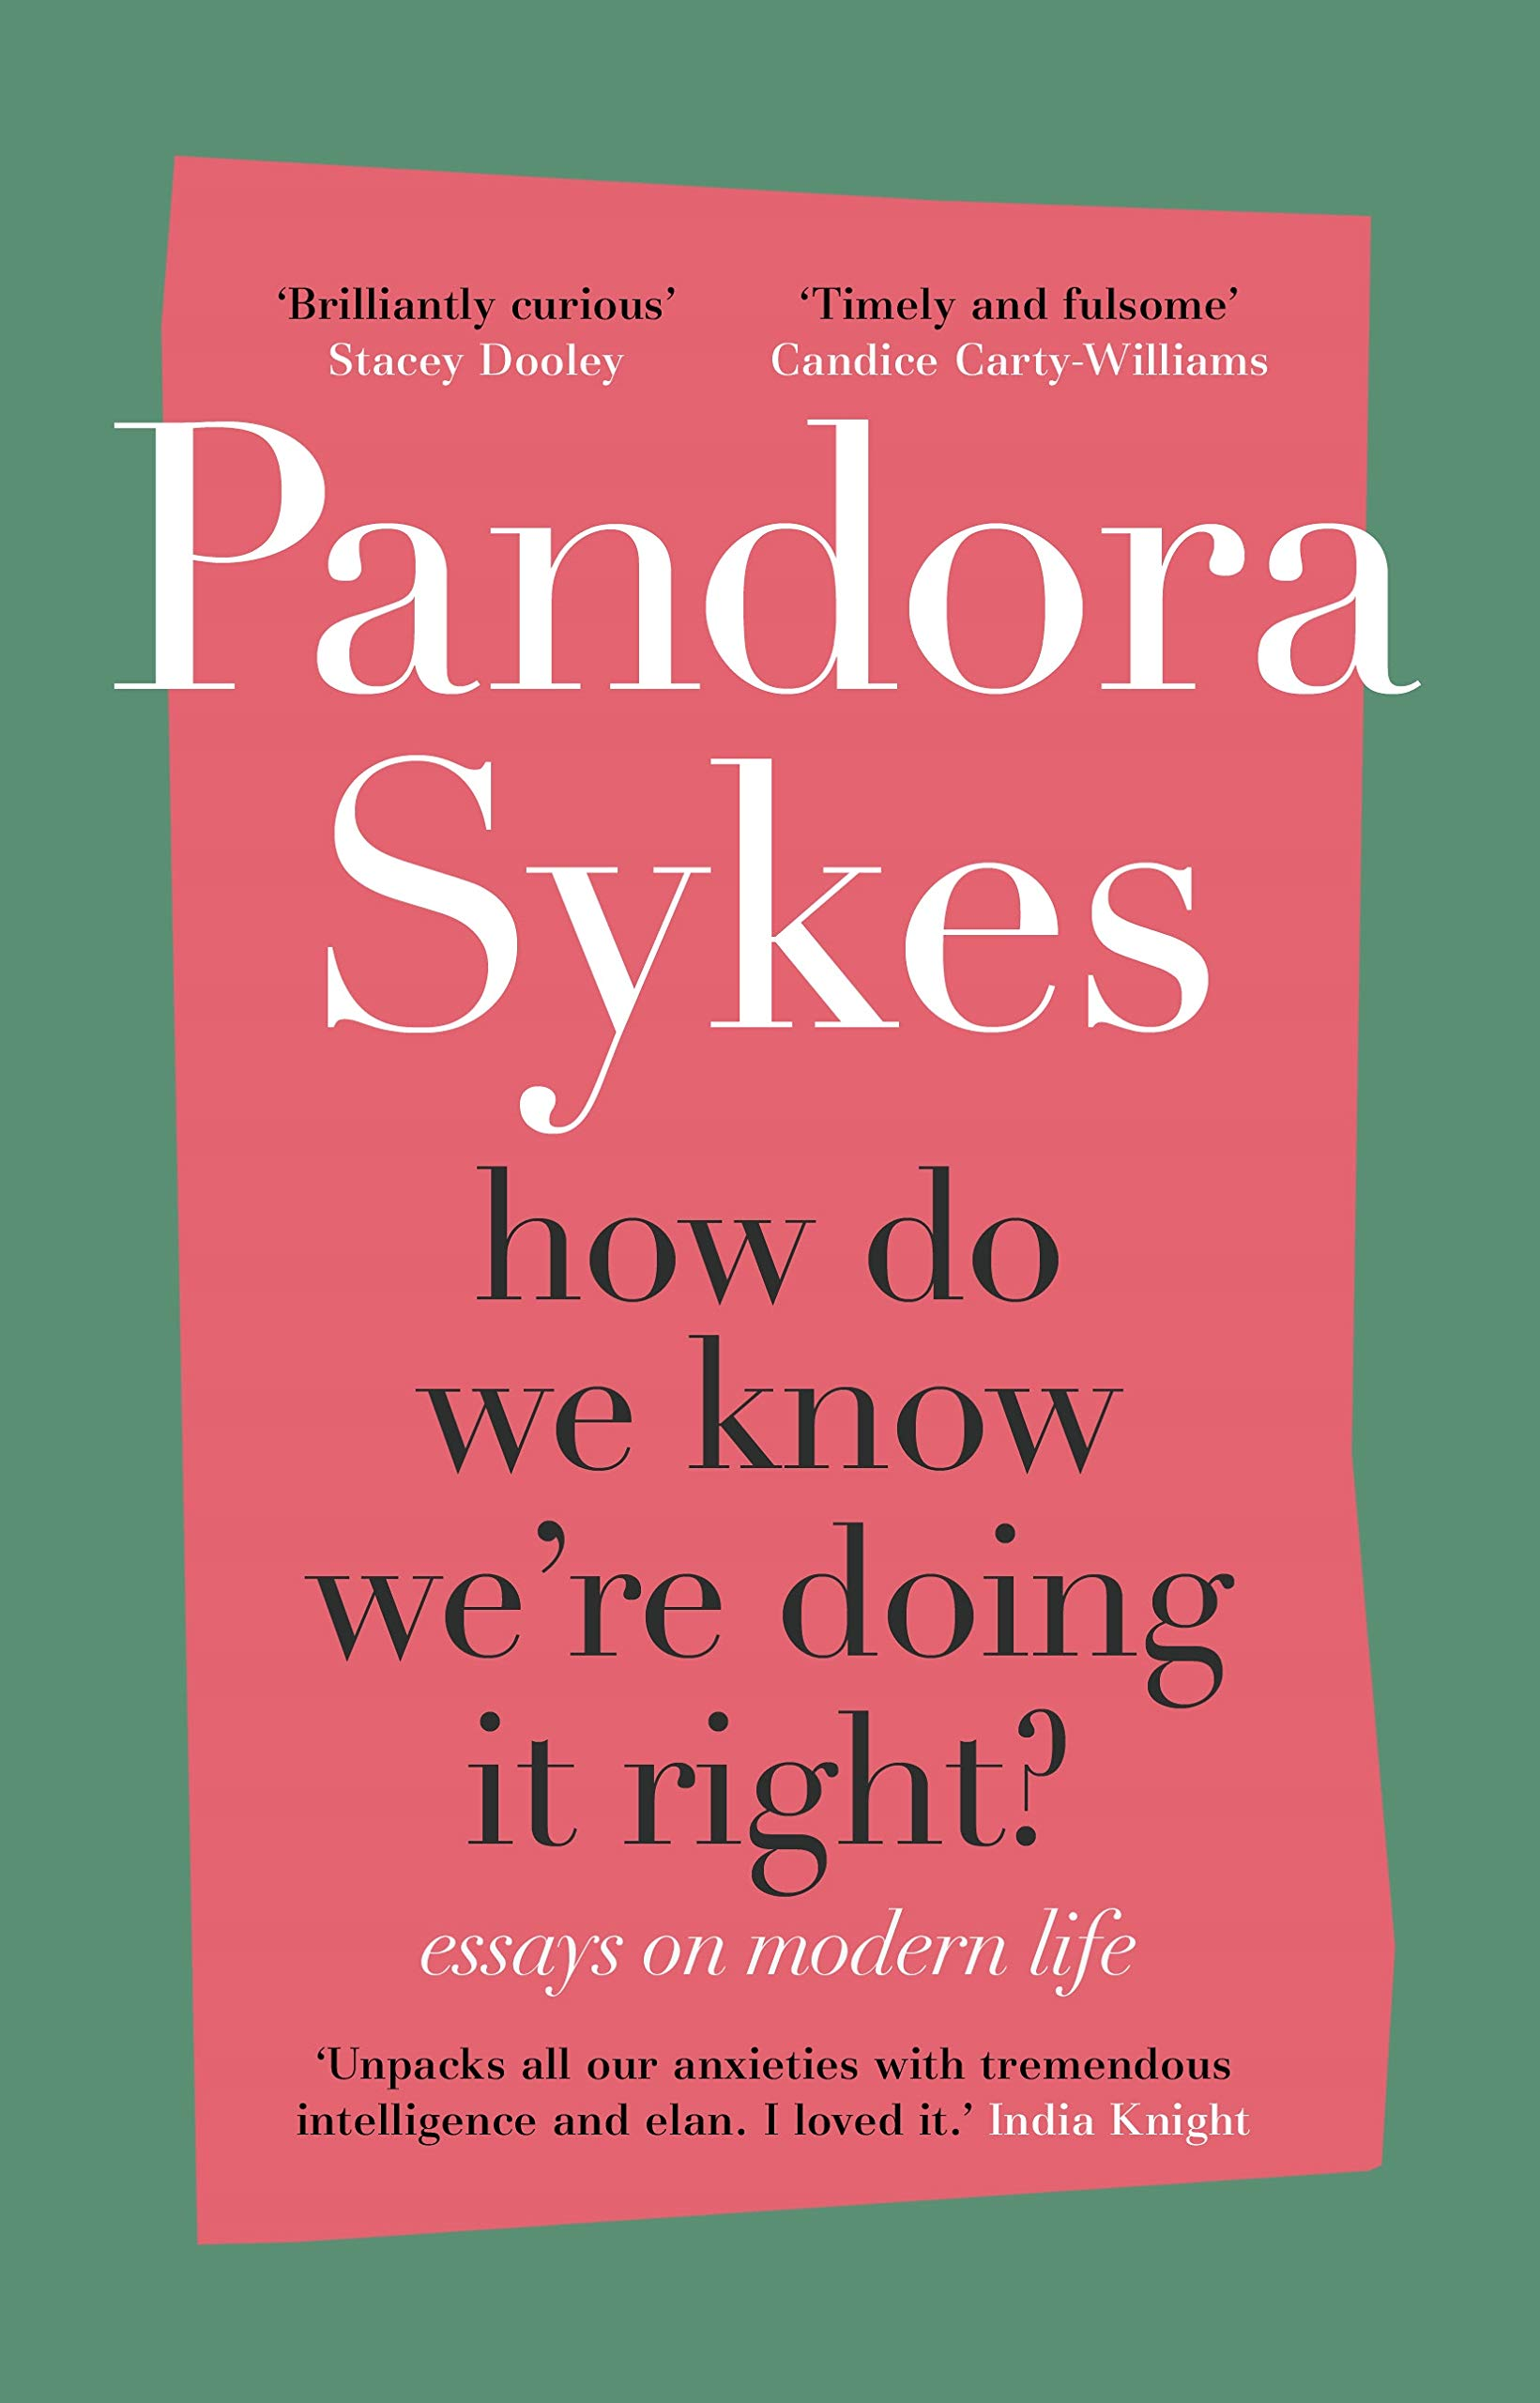 How Do We Know We're Doing It Right?: The Sunday Times bestselling essay  collection: Amazon.co.uk: Sykes, Pandora: 9781786332073: Books